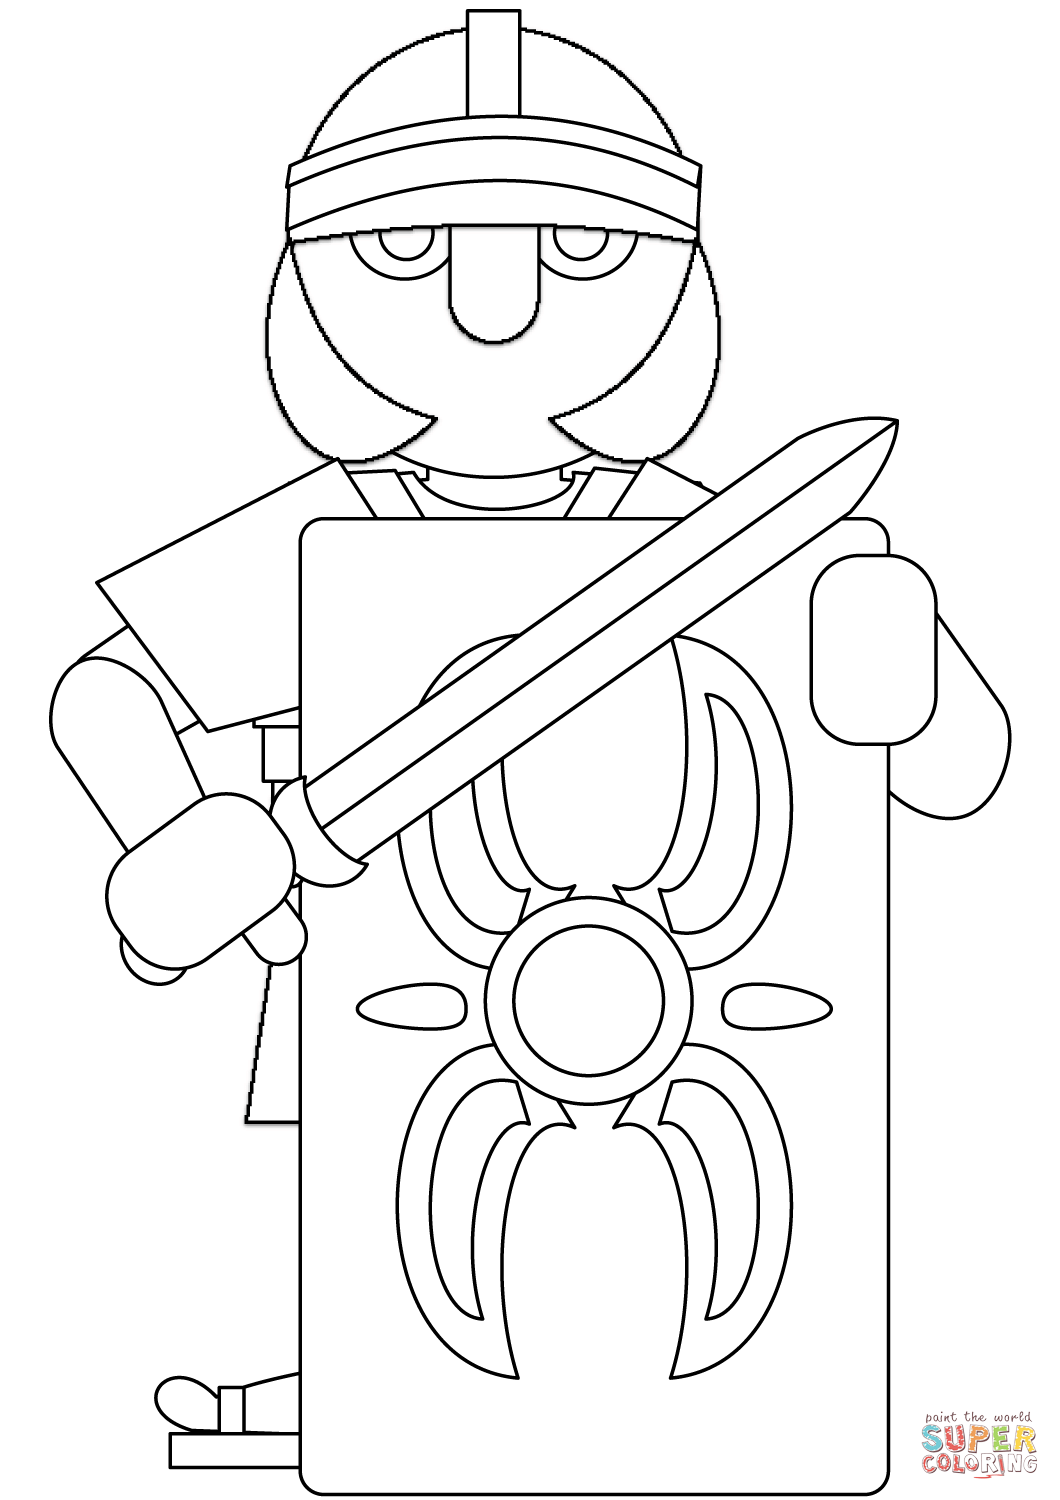 gladiator pictures to colour in roman gladiator coloring pages gladiator colour in pictures to